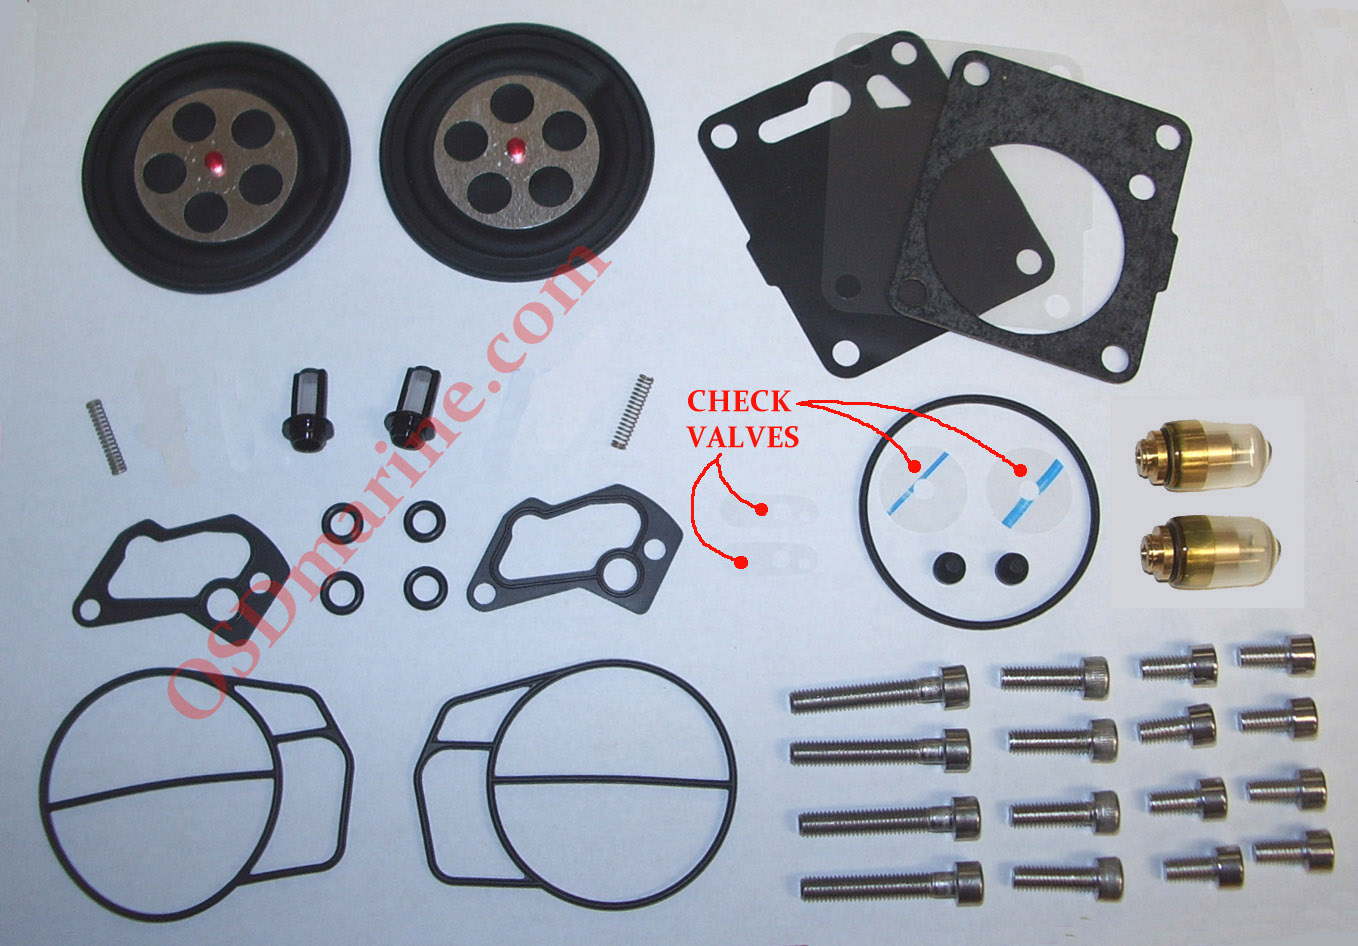 Fuel / Oil System Parts for Sea Doo PWC & Boats